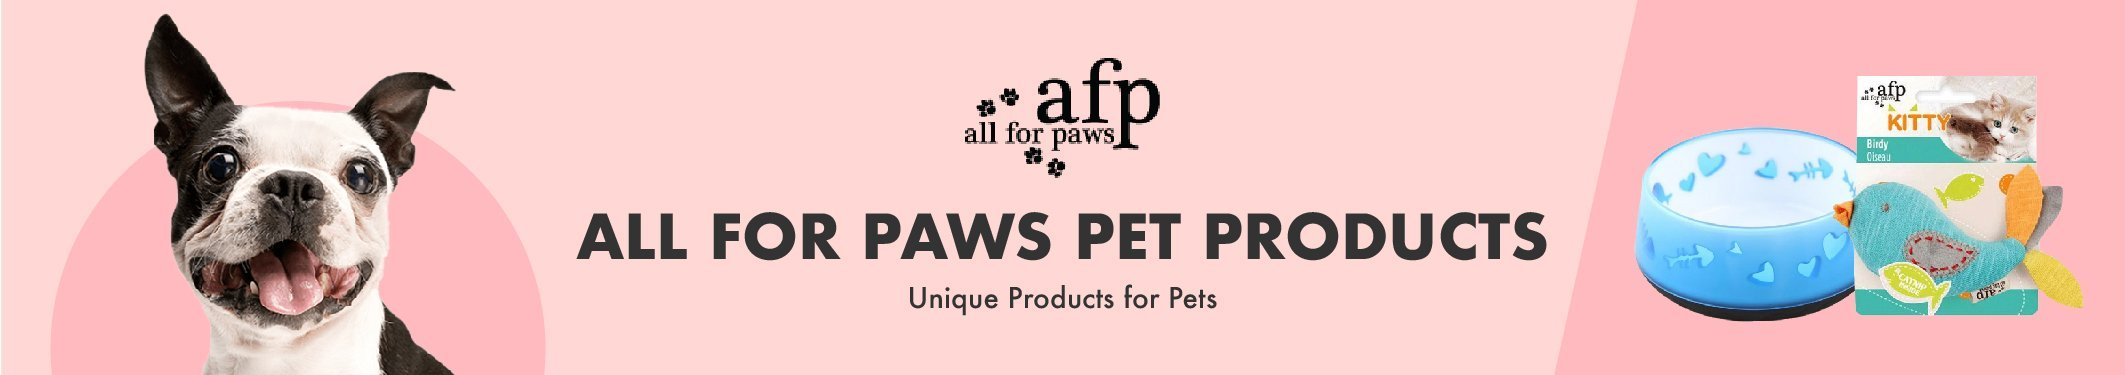 All For Paws Dogs and Puppy Products